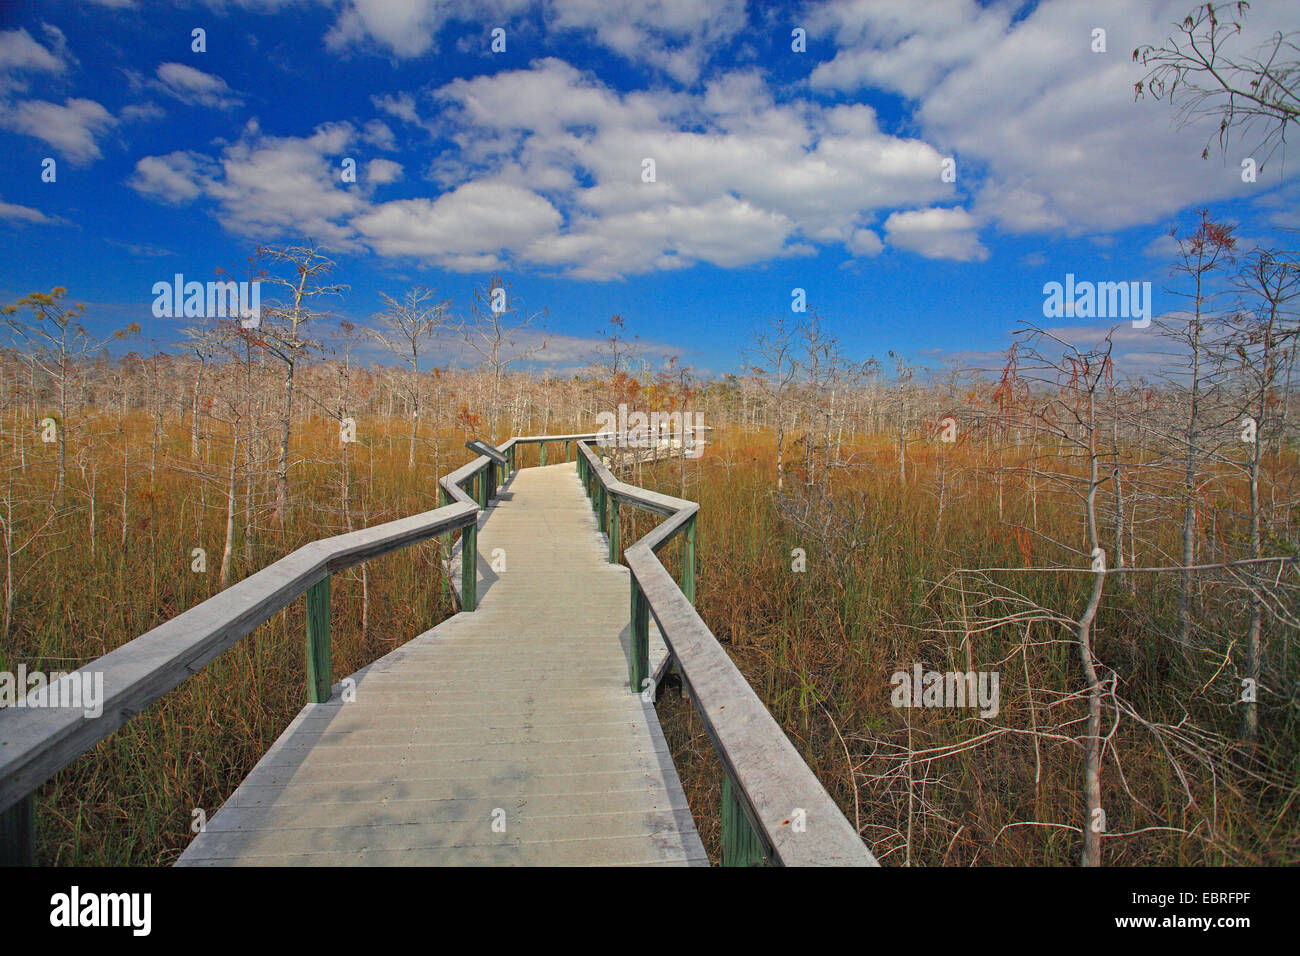 boarded footpath in the Everglades National Park, USA, Florida, Everglades National Park - Stock Image